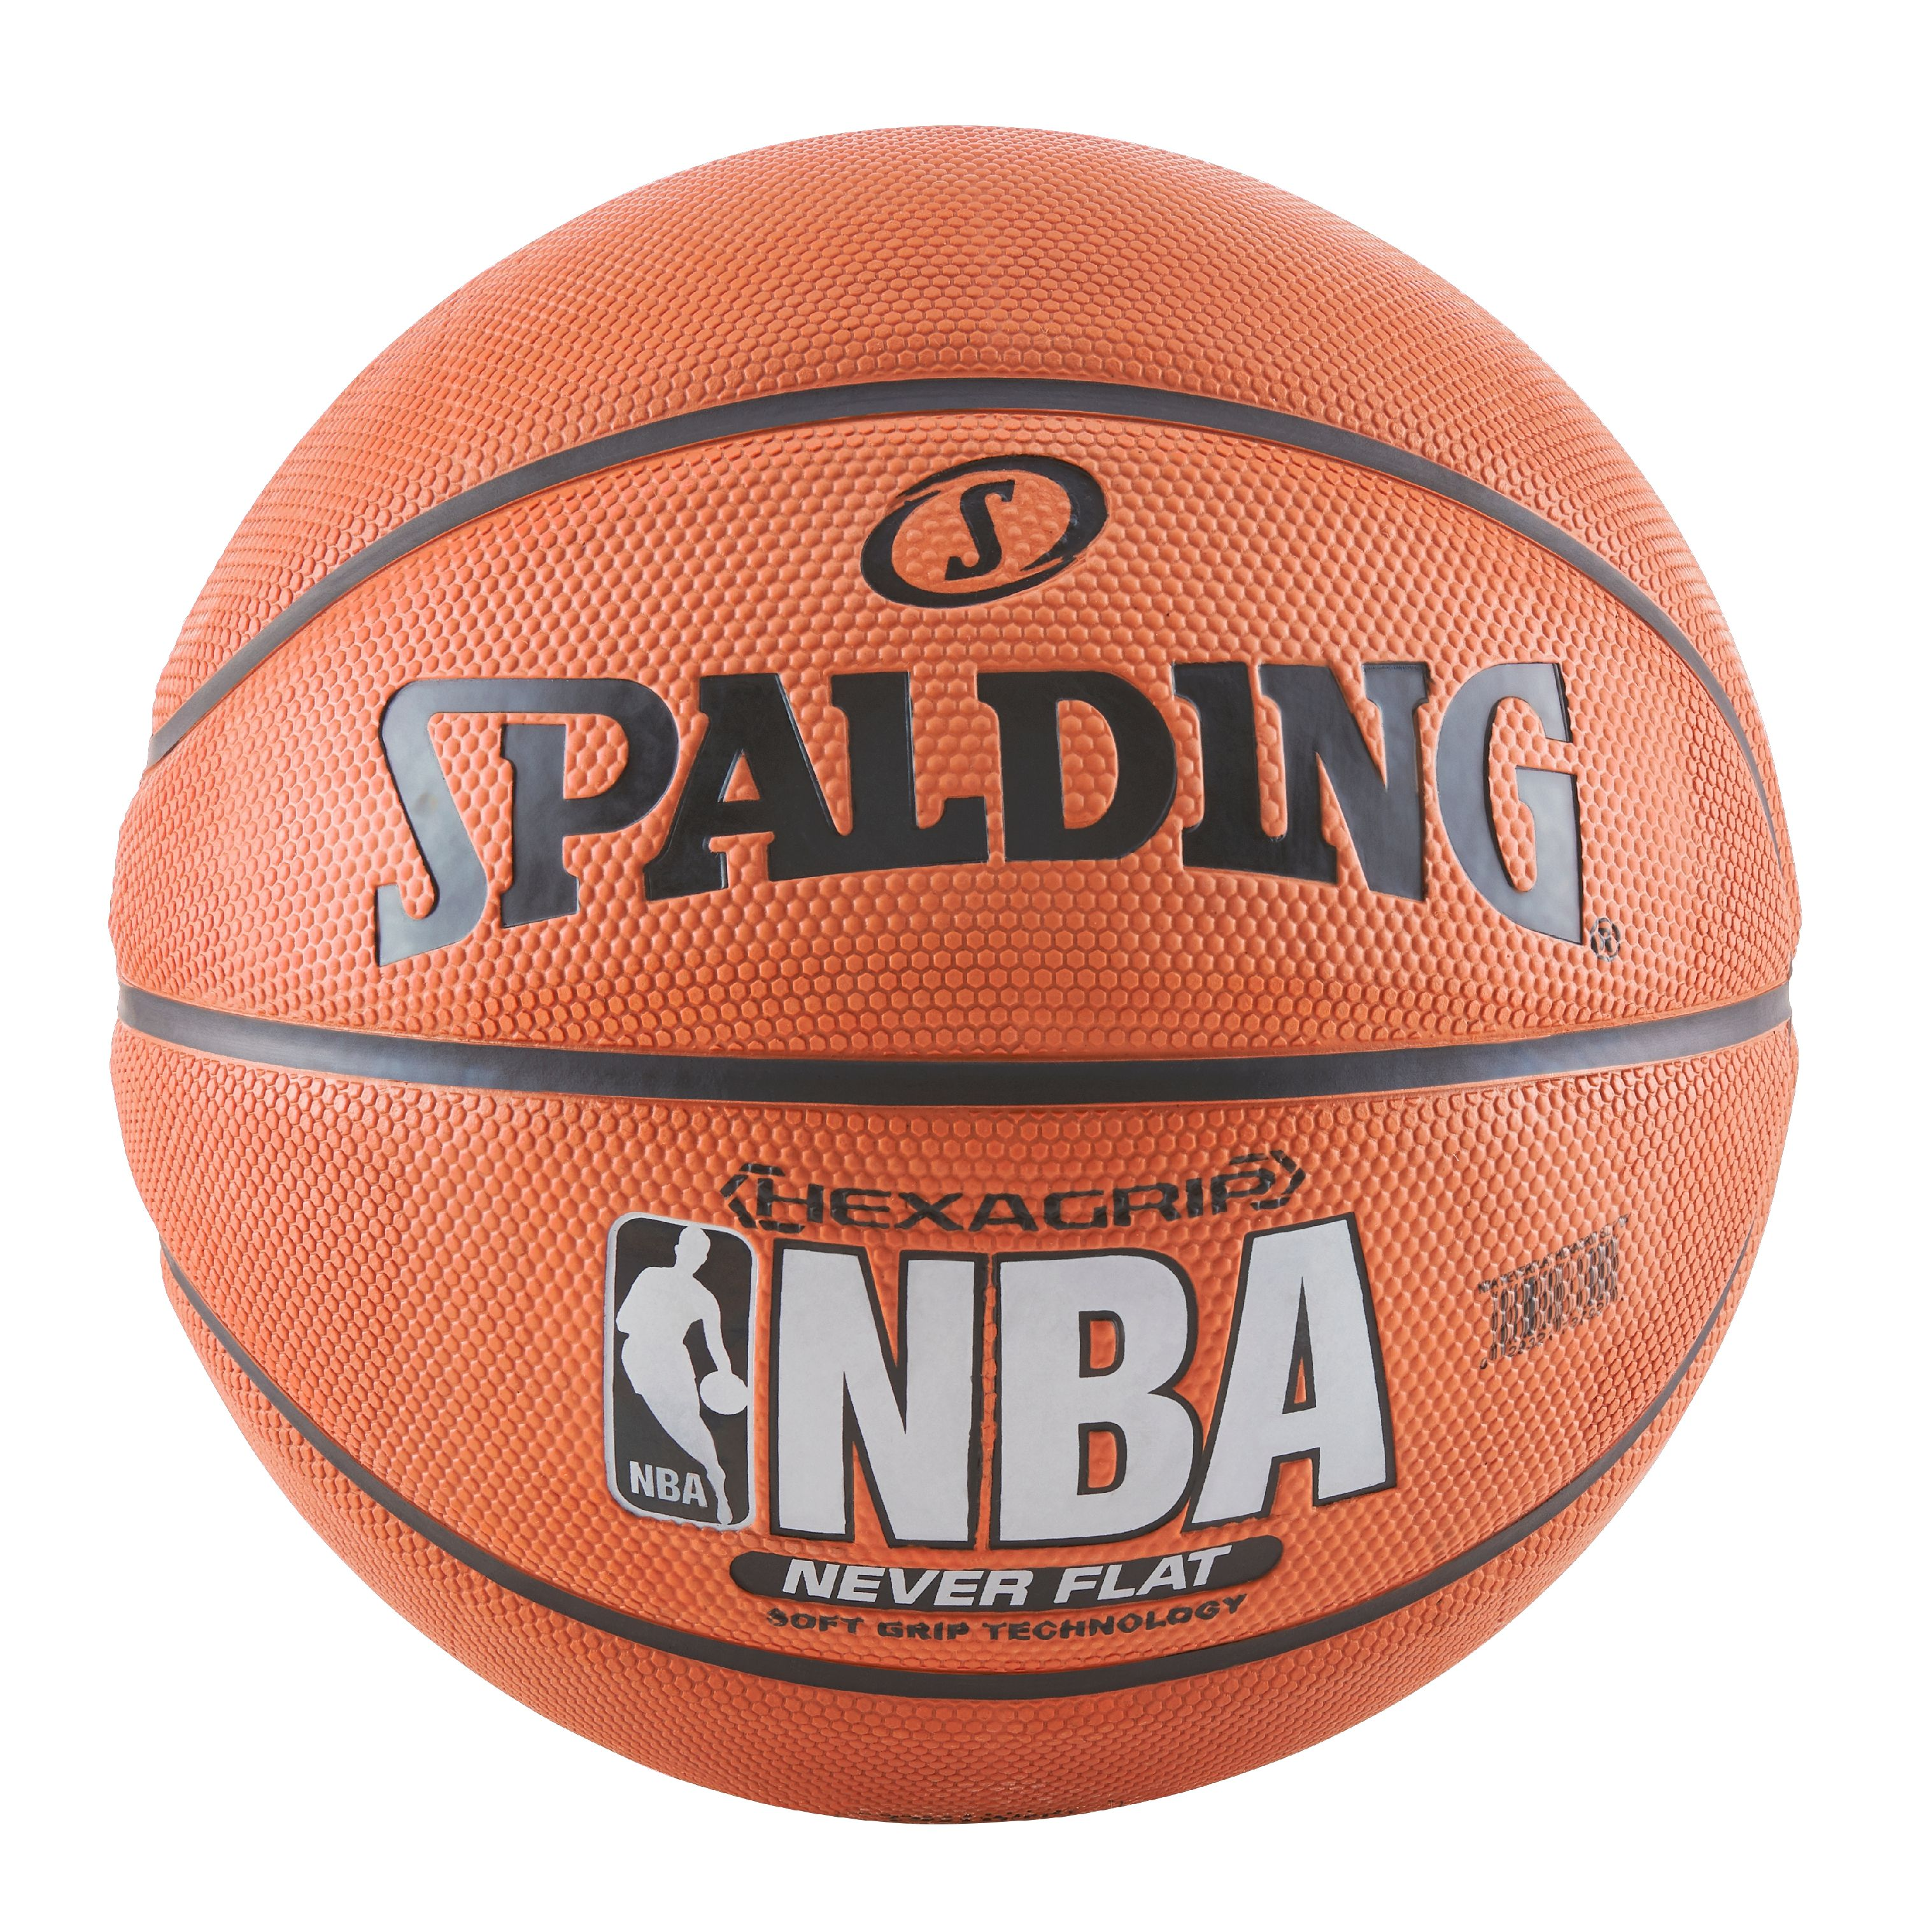 can i buy spalding basketball from nike store